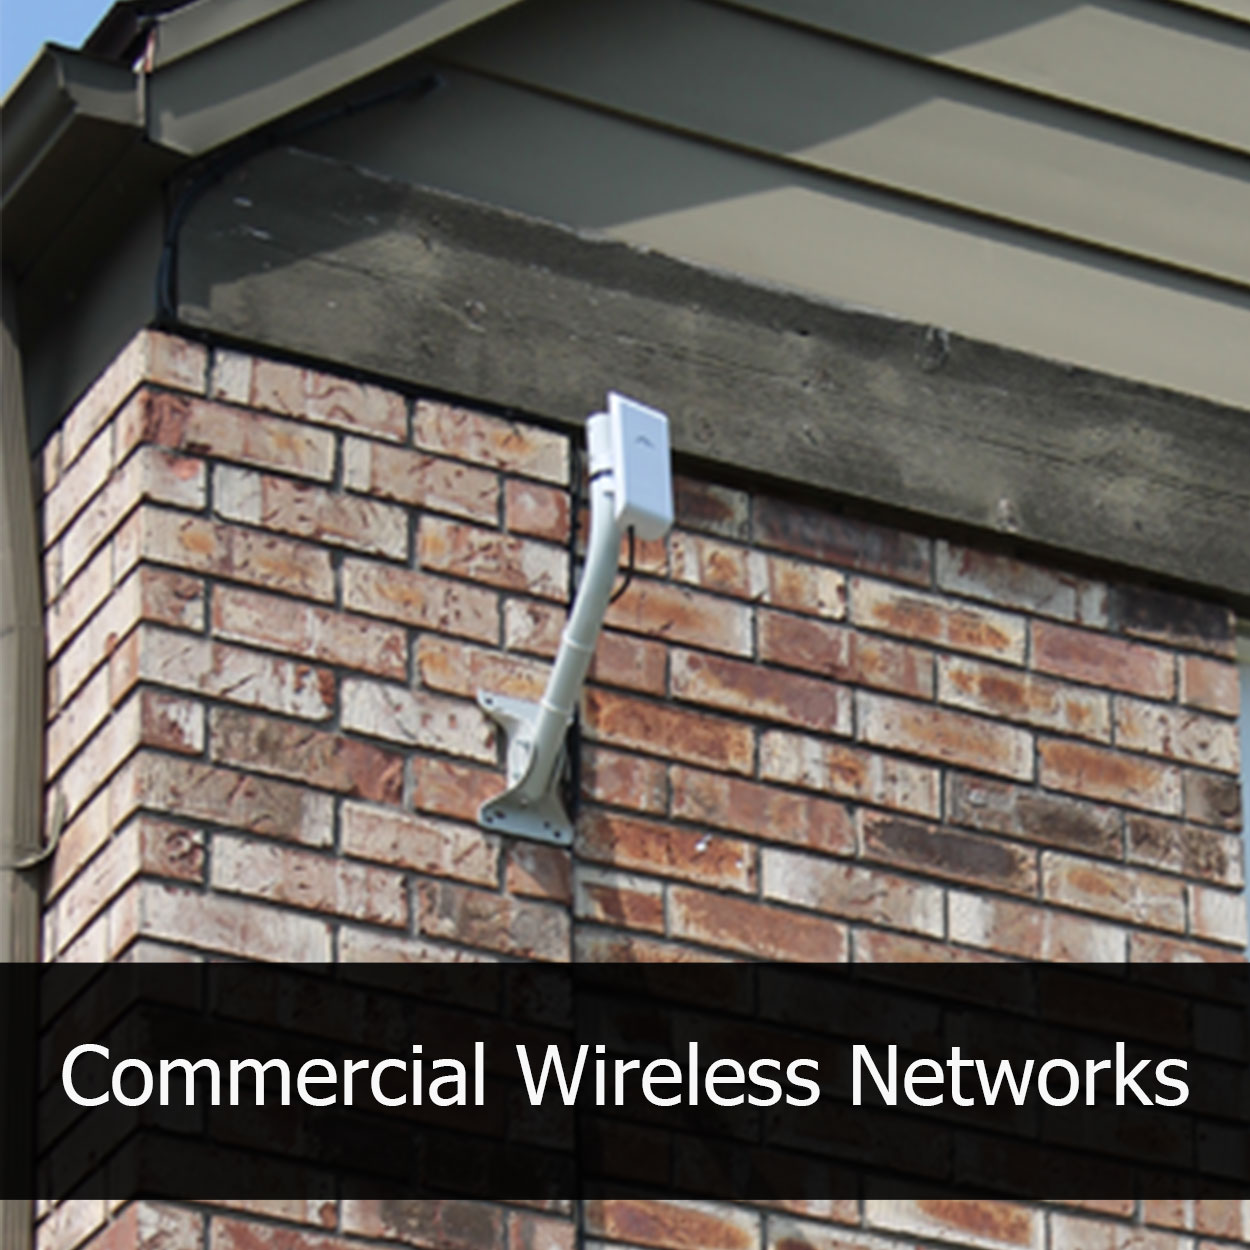 Commercial Wireless Networks